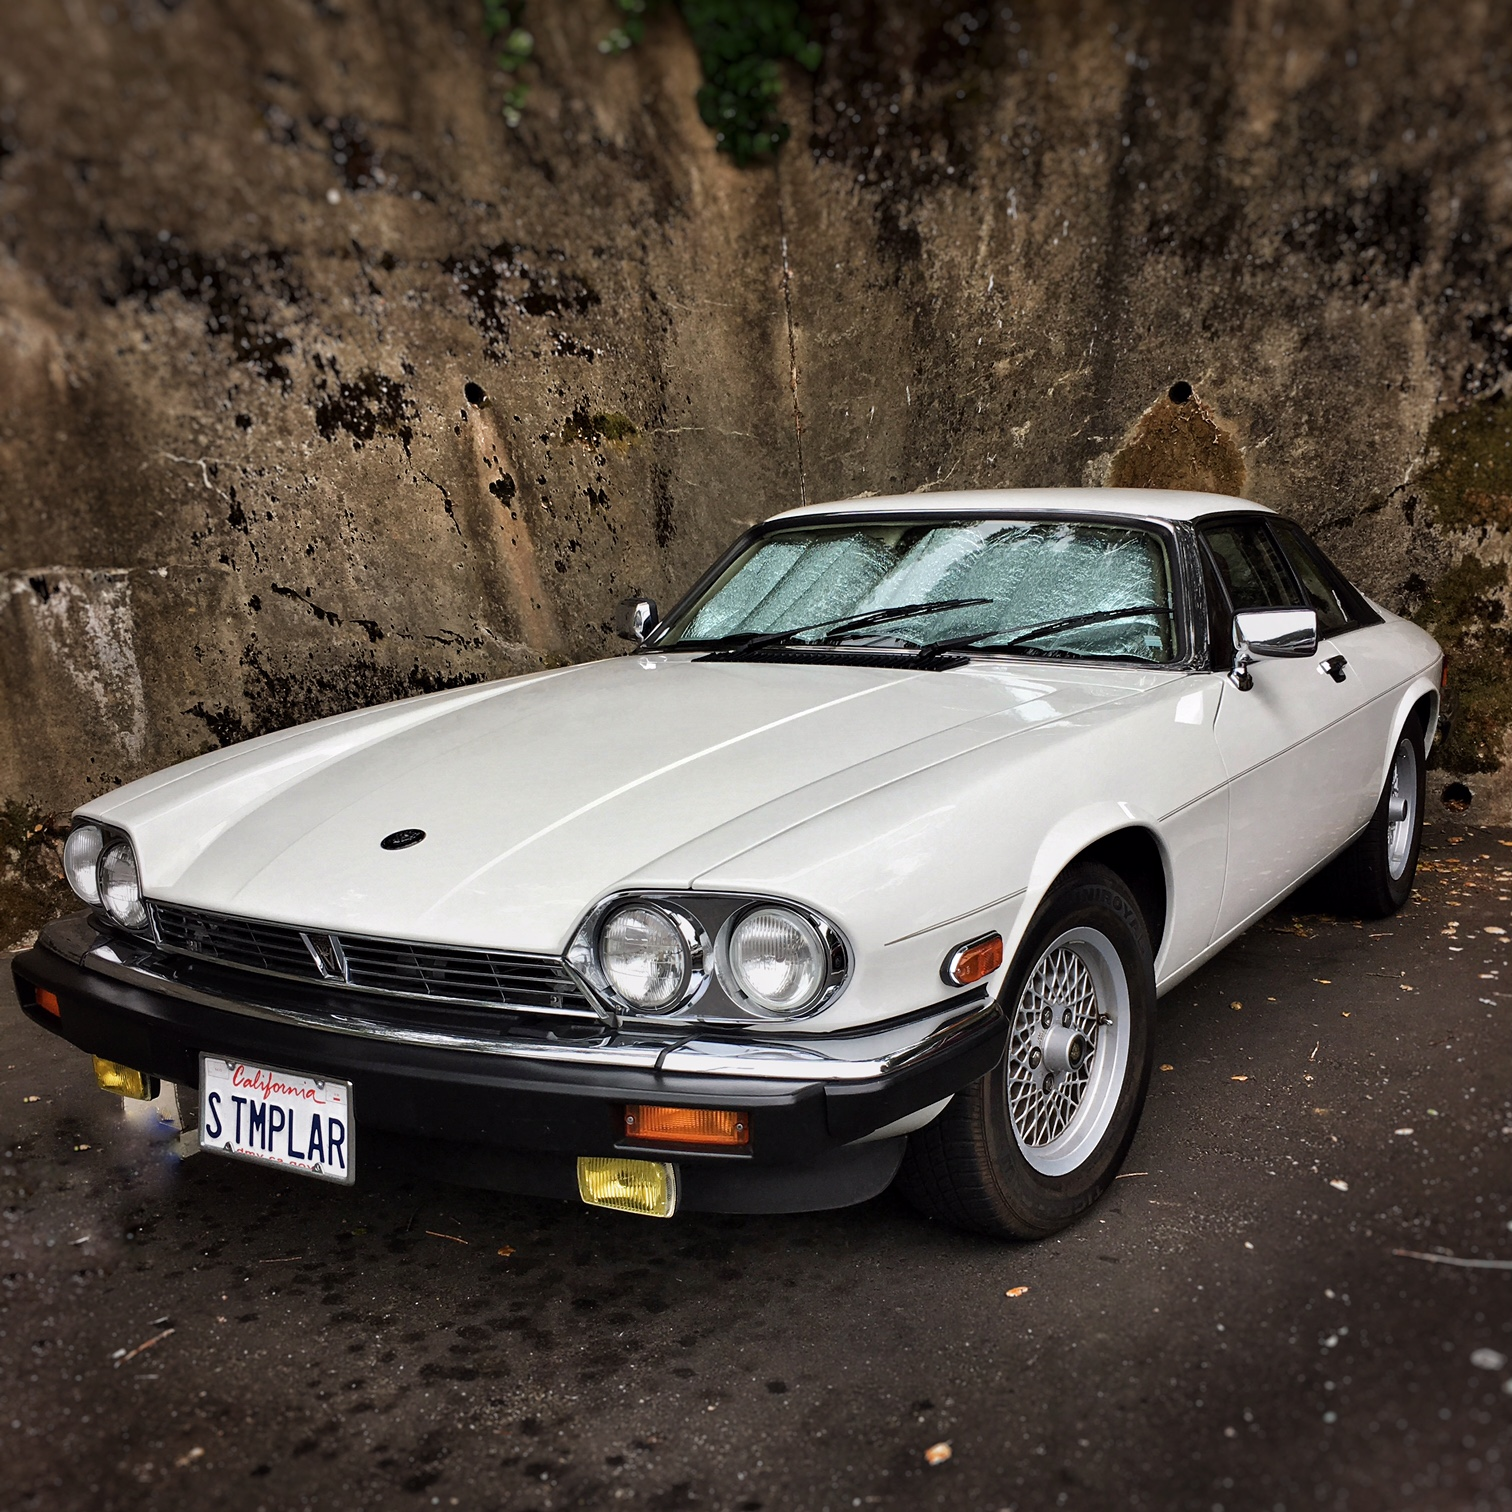 My Jaguar Experience 1970 Xj6 Manual Transmission Five Years And Ten Thousand Hard Won Miles On The Clock Ago We Brought Home A Beautiful Simon Templar White 1989 Xj S In Need Of An Ungodly Amount